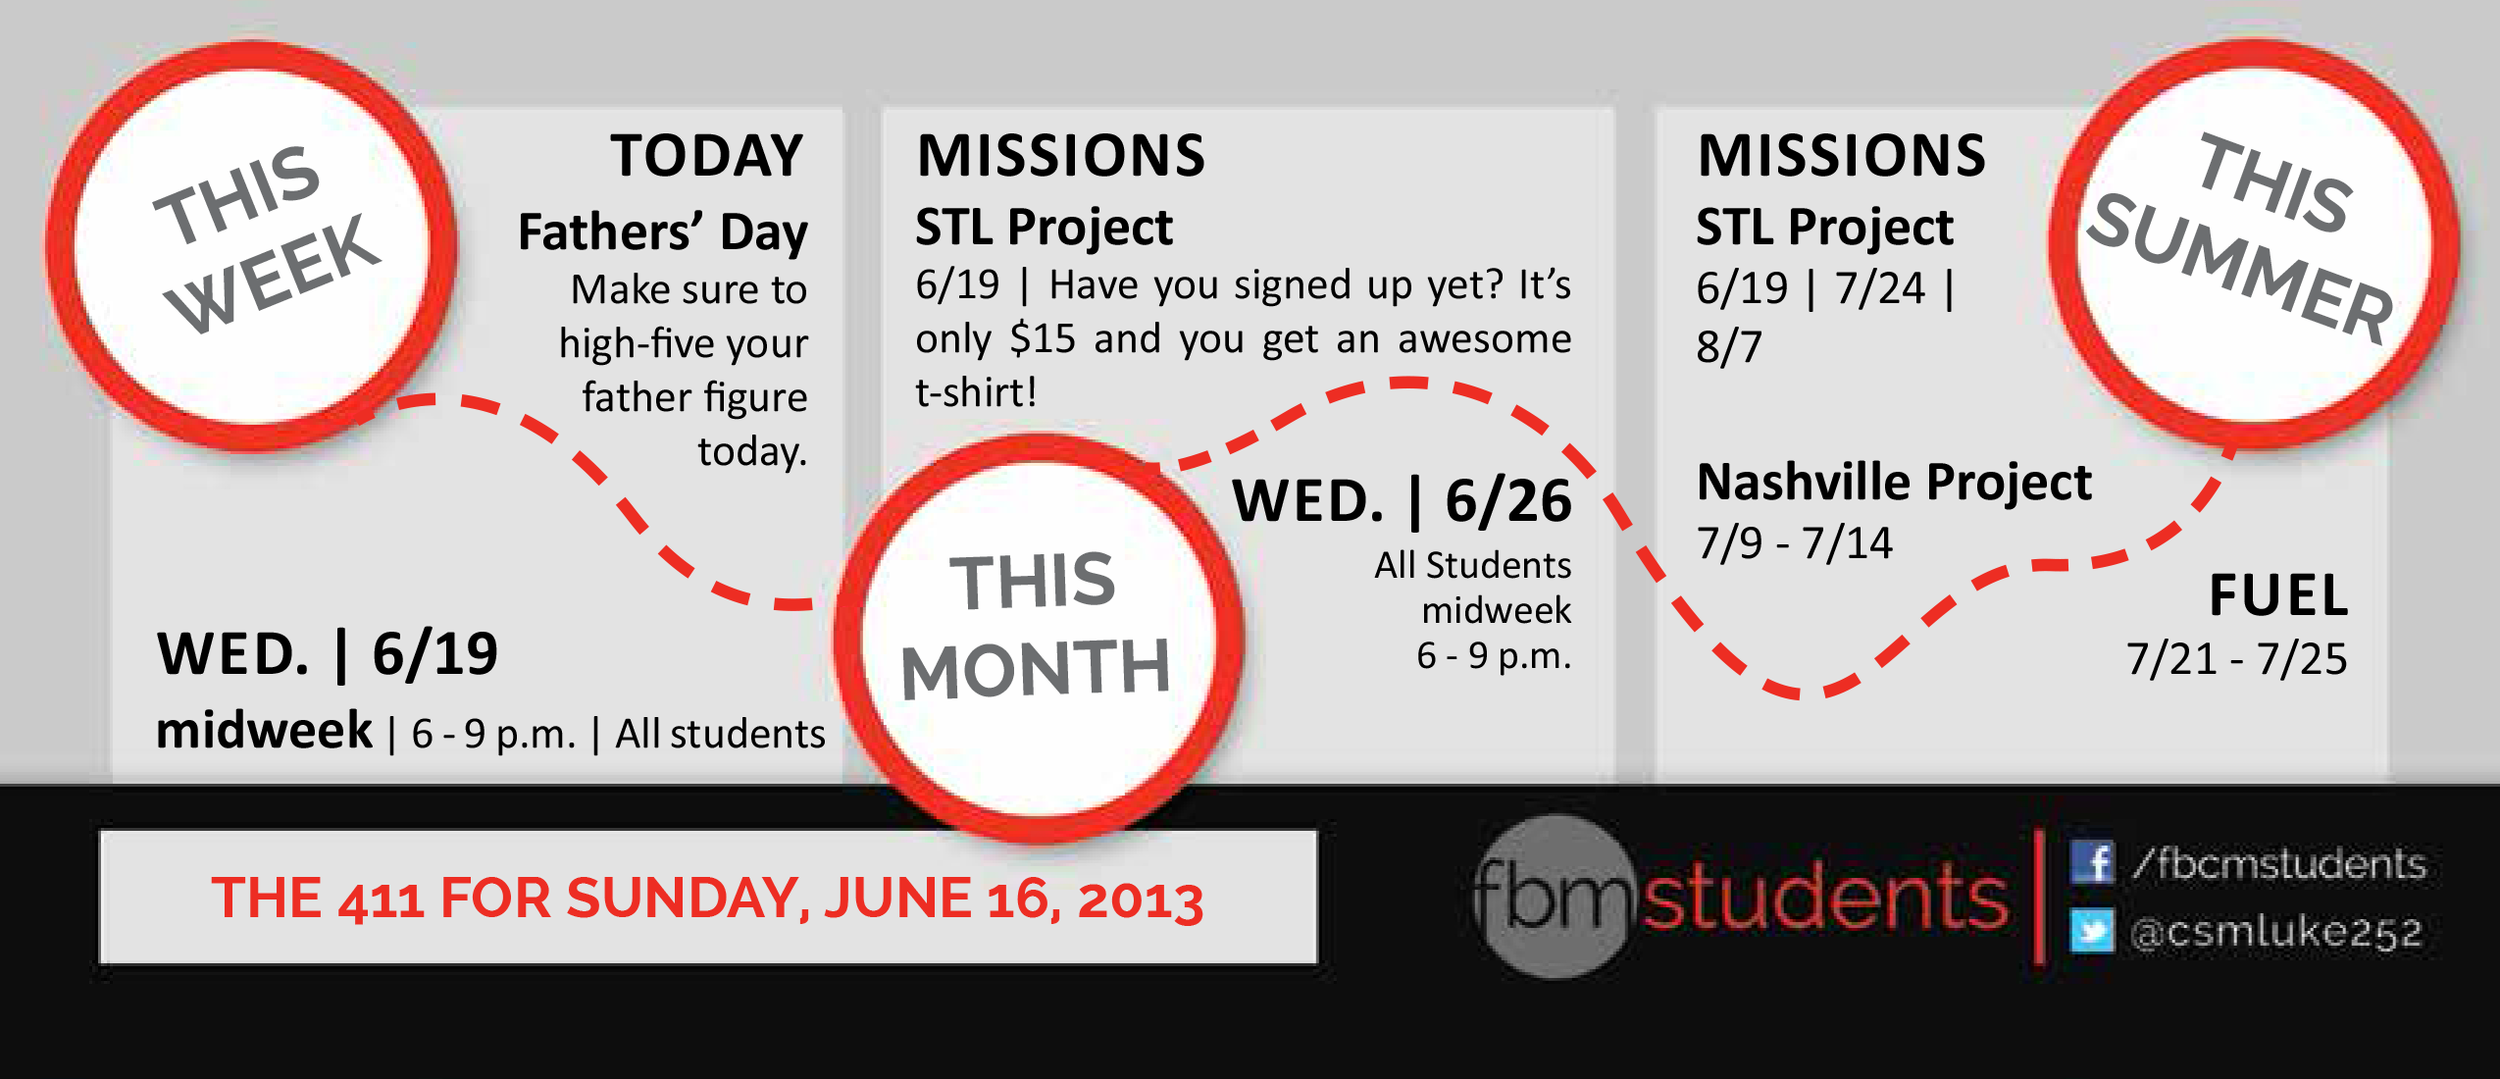 The_411_Flyer_fbmstudents_06-16-13.png